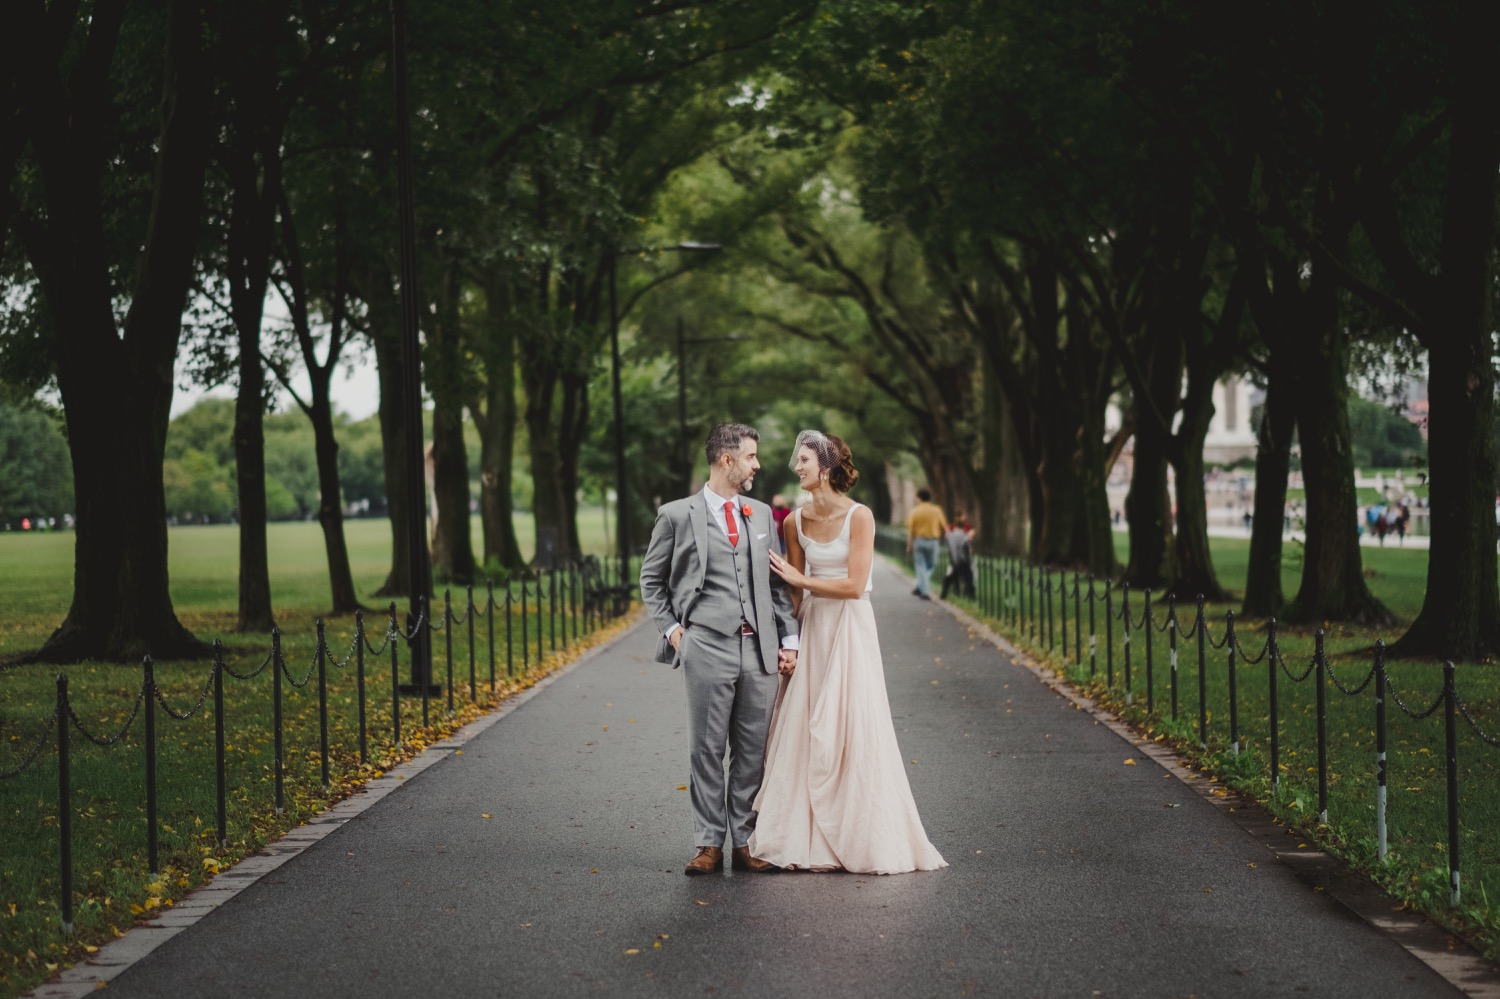 Lincoln Memorial Wedding | Washington DC Wedding Photographer | Tim Riddick Photography